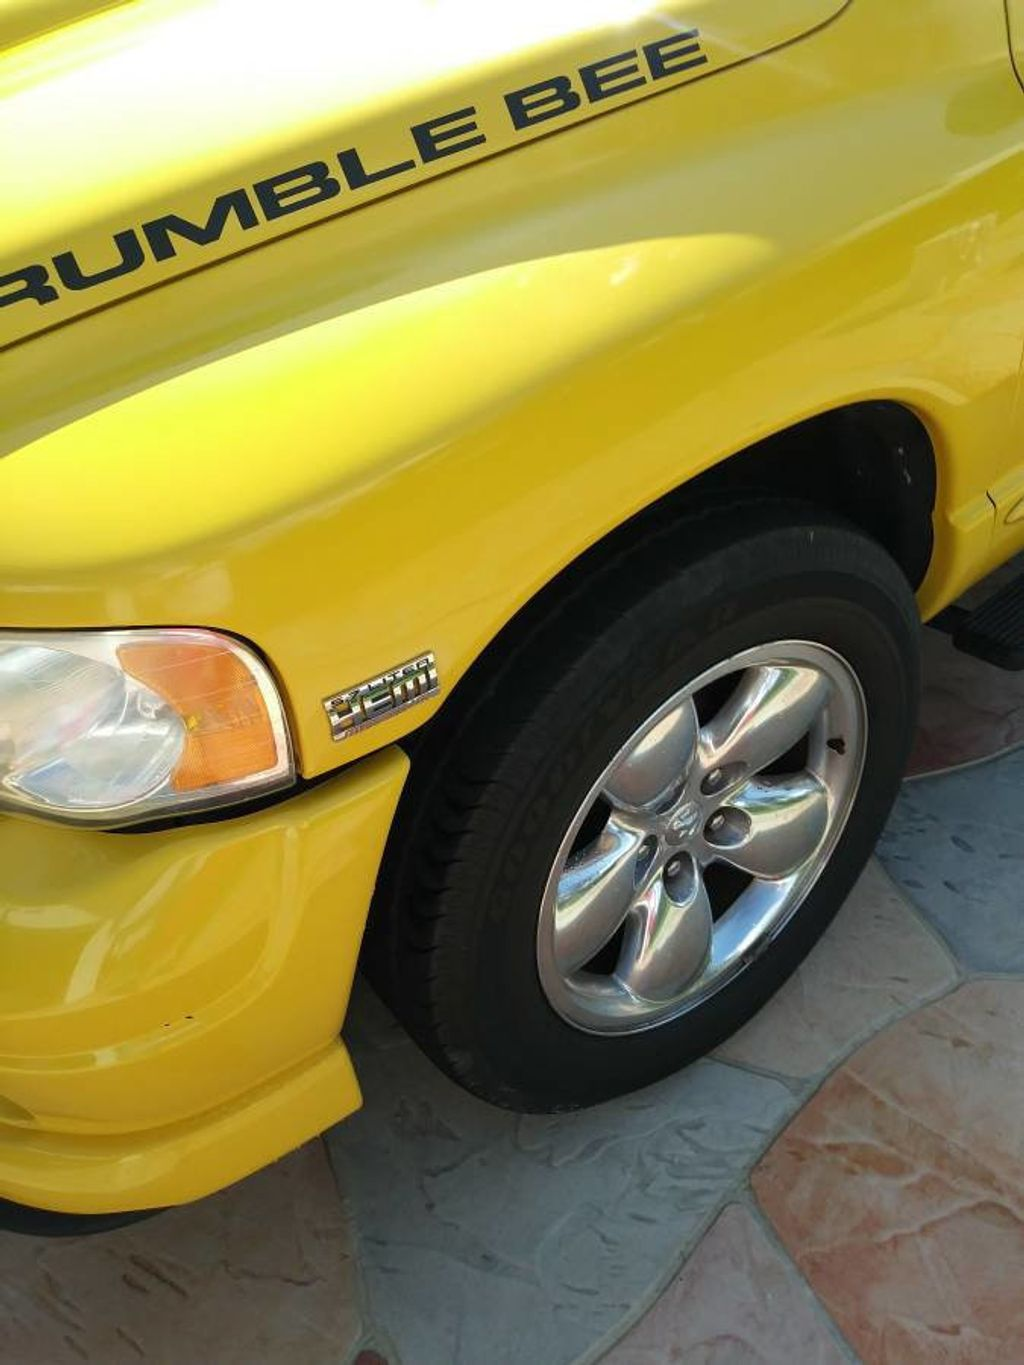 2005 Dodge Ram 1500 Rumble Bee Limited Edition For Sale - 17386933 - 8